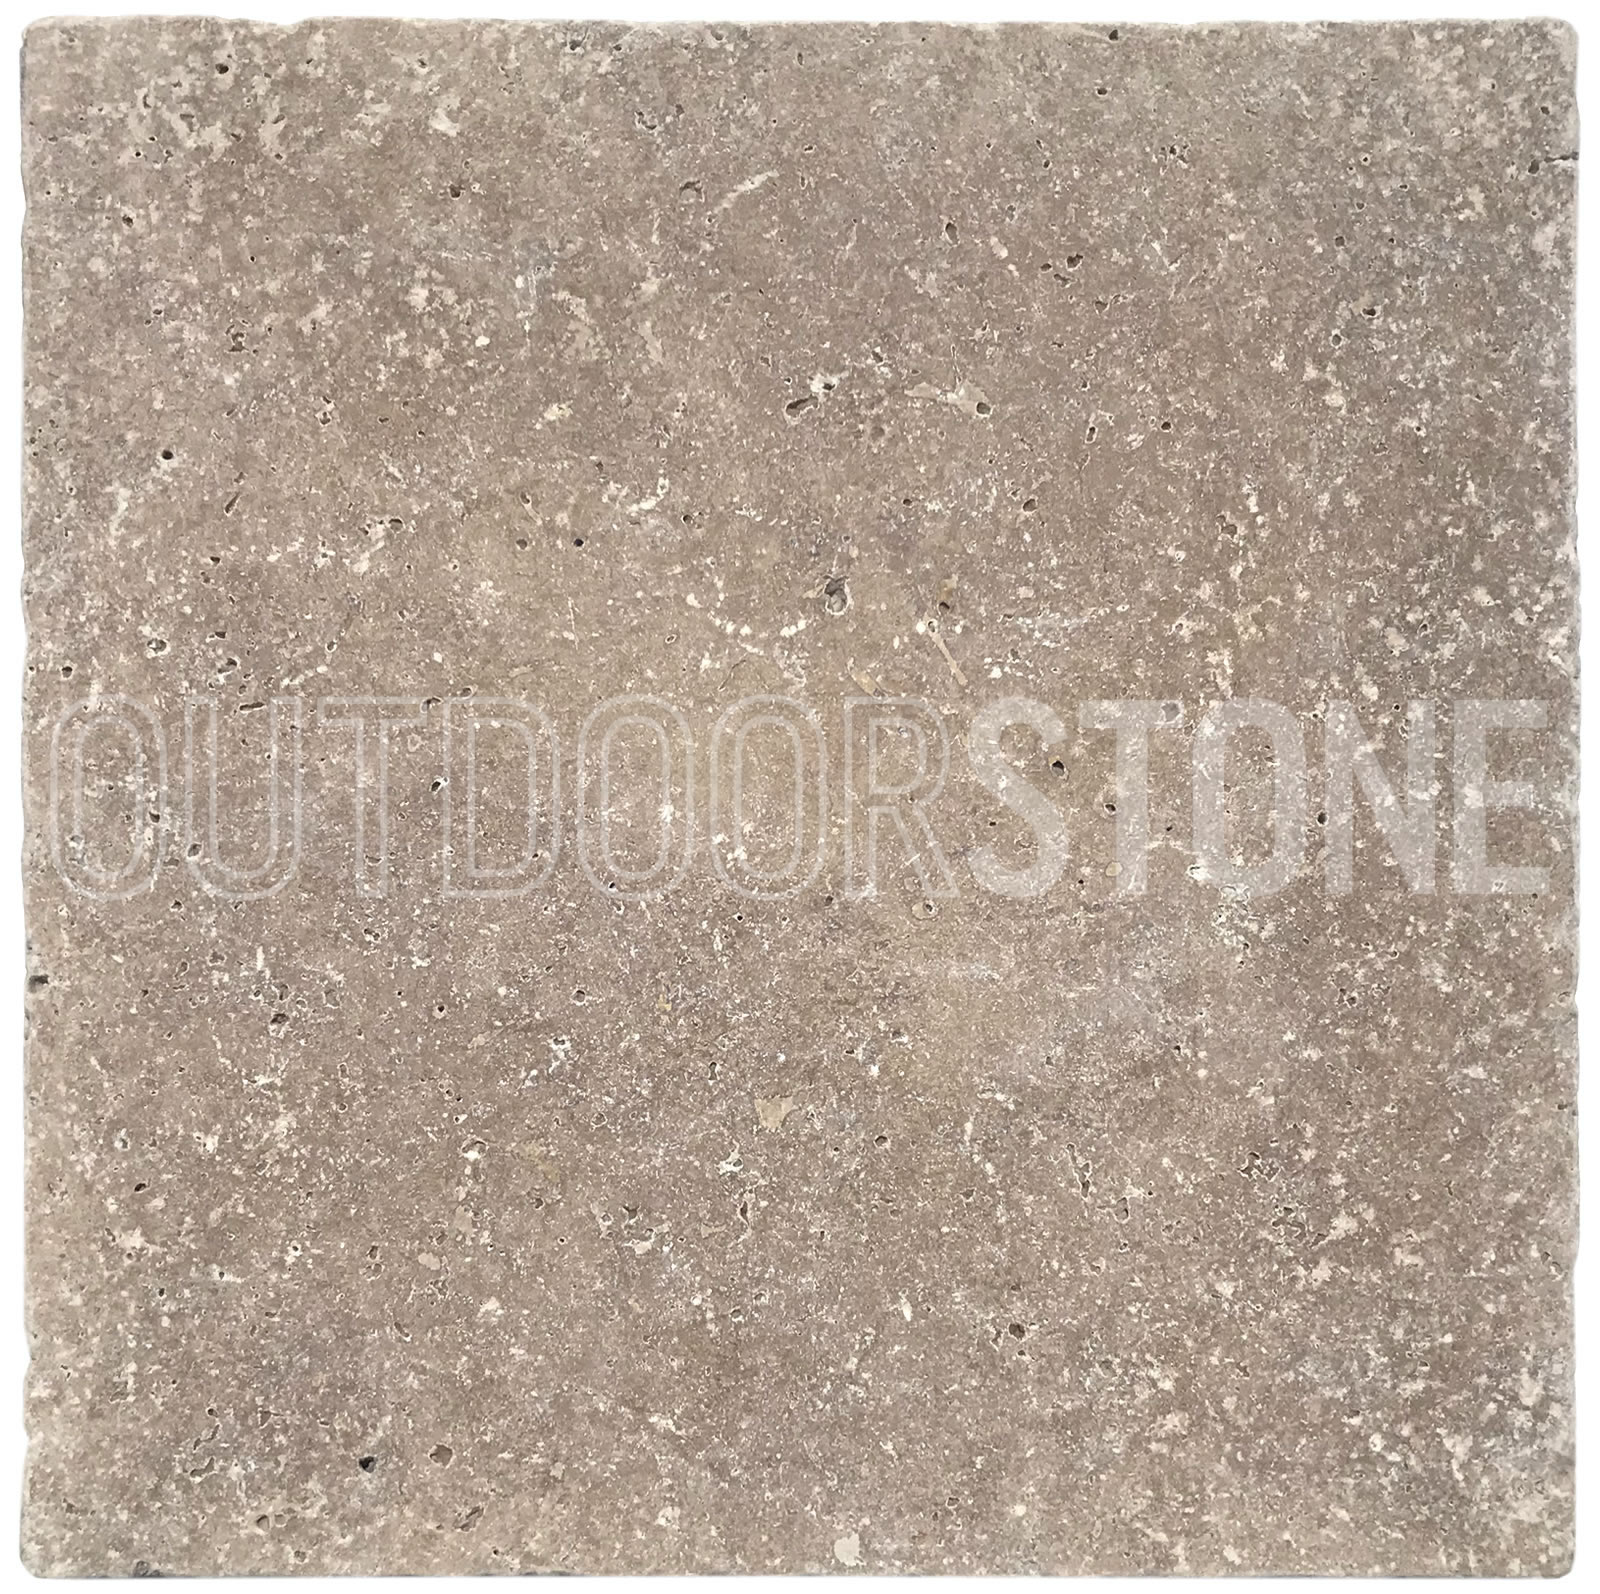 "Tumbled Riverbed Walnut Beige 3: Walnut Travertine 3 Cm Paver Tumbled 12""x12"""